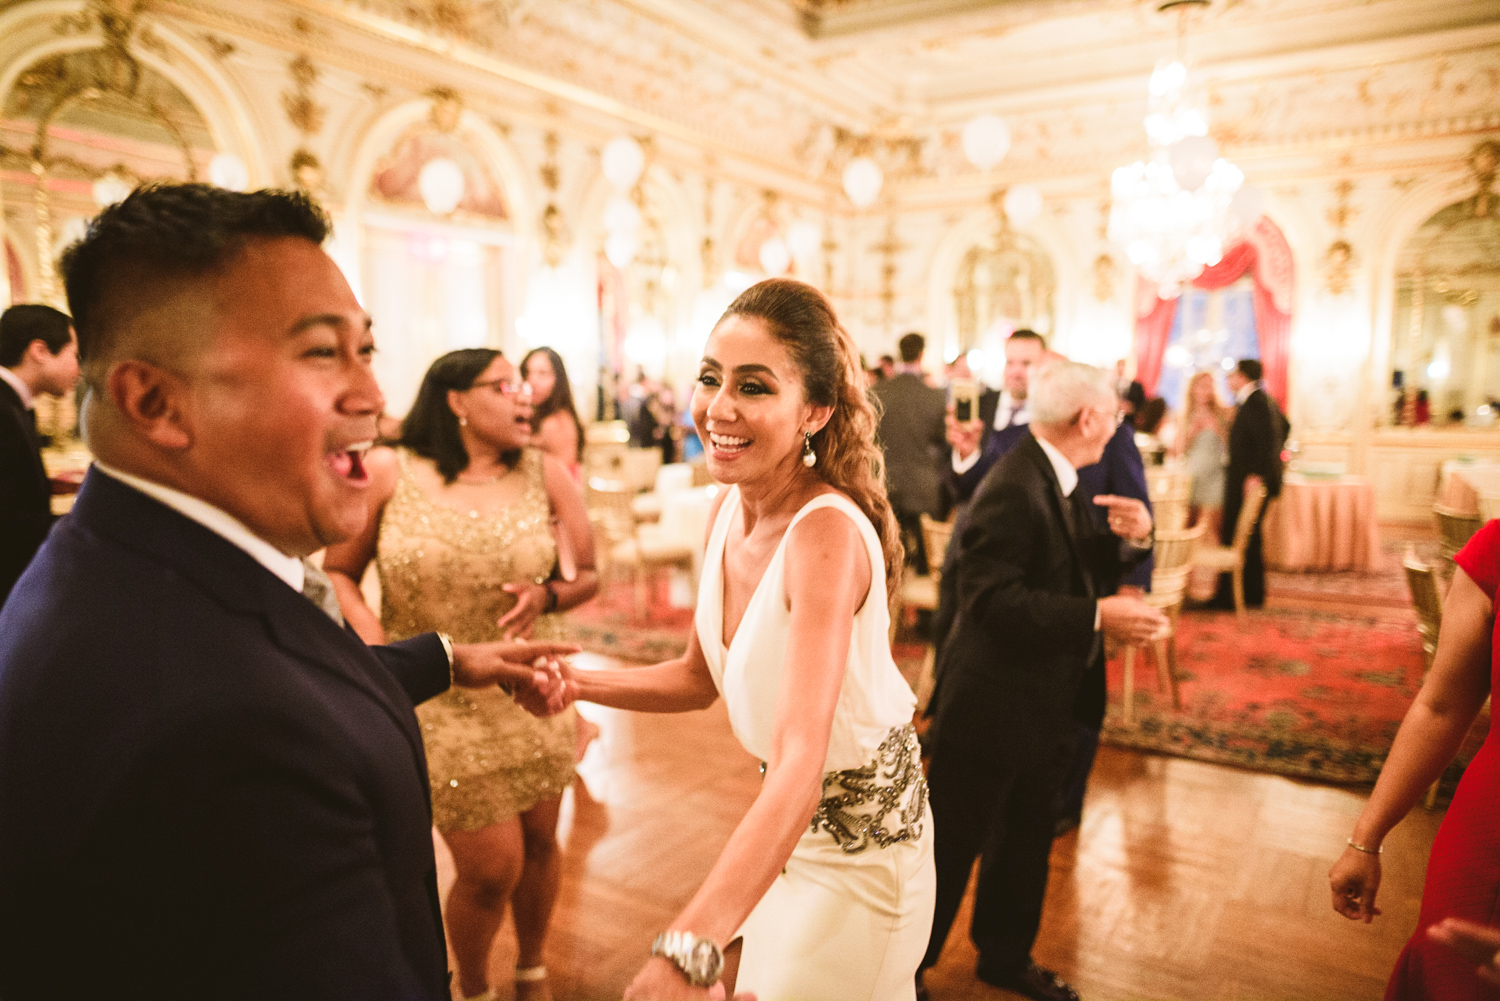 010 bride to be and groom to be share a dance at their engagement party in washington dc.jpg